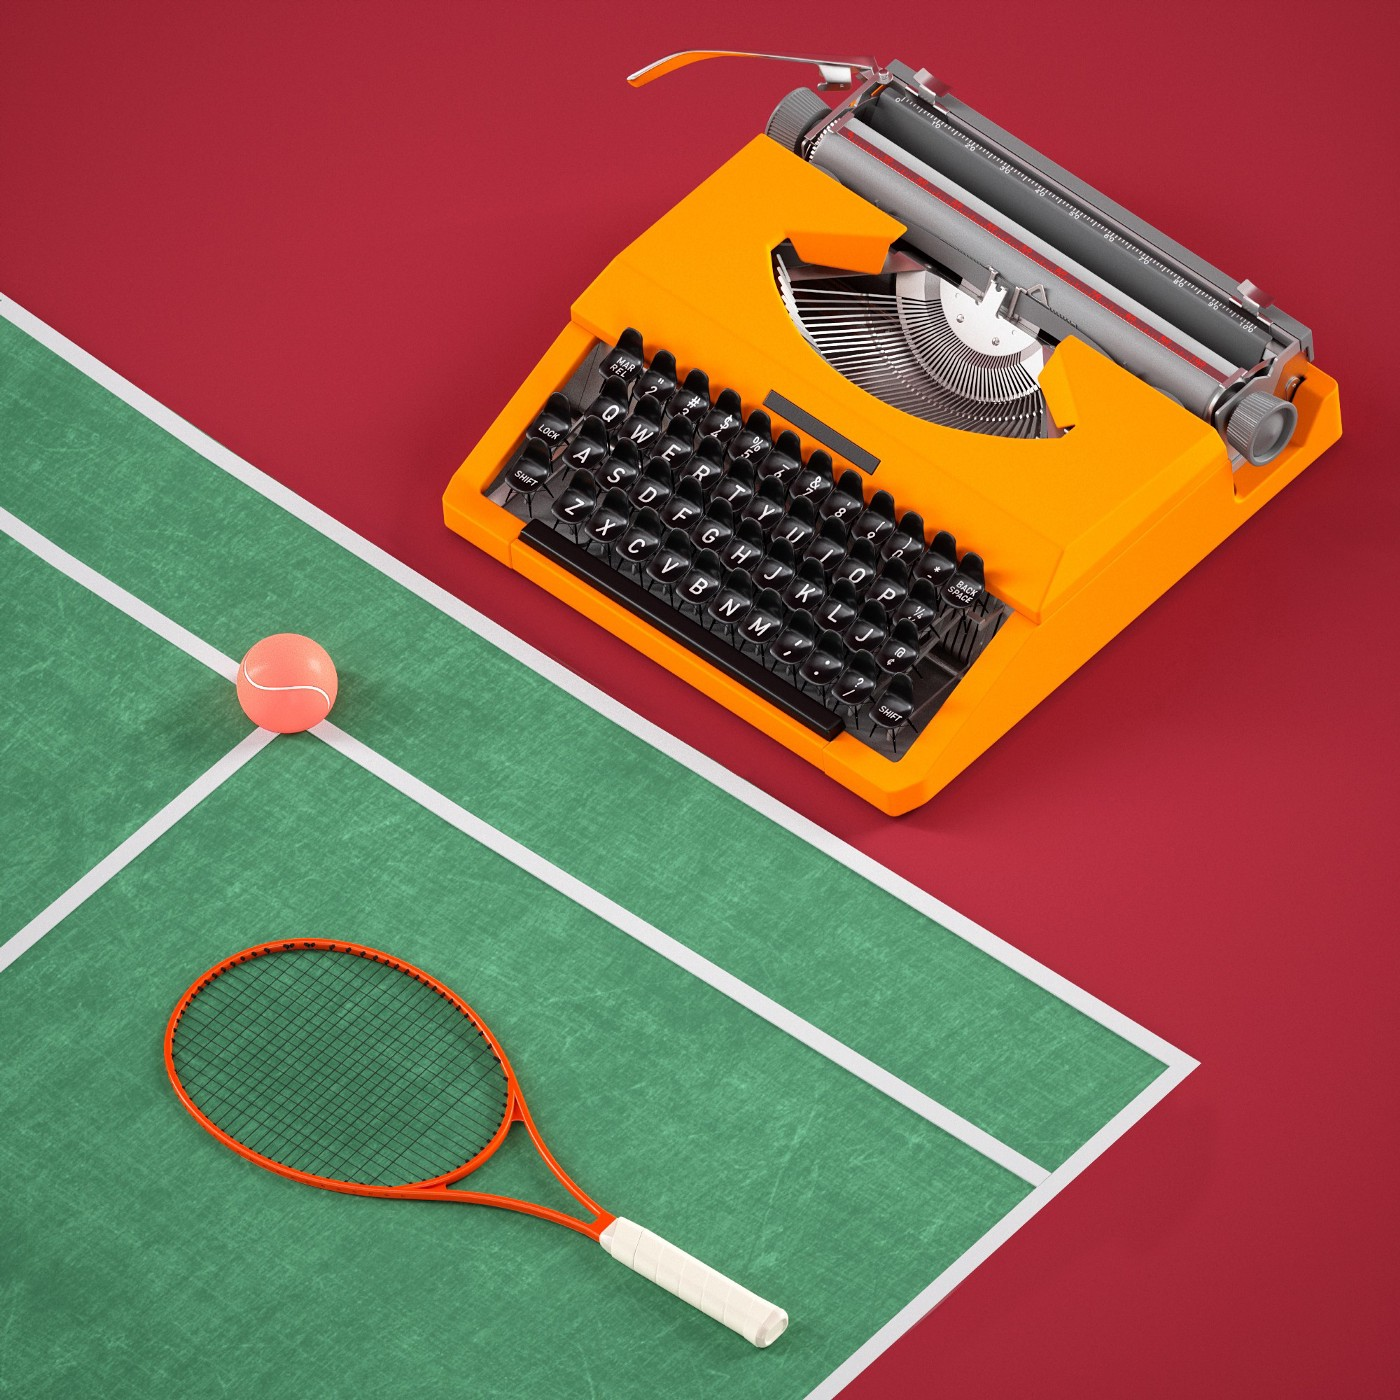 An artsy photo of a typewriter on a tennis court with a racquet and tennis ball